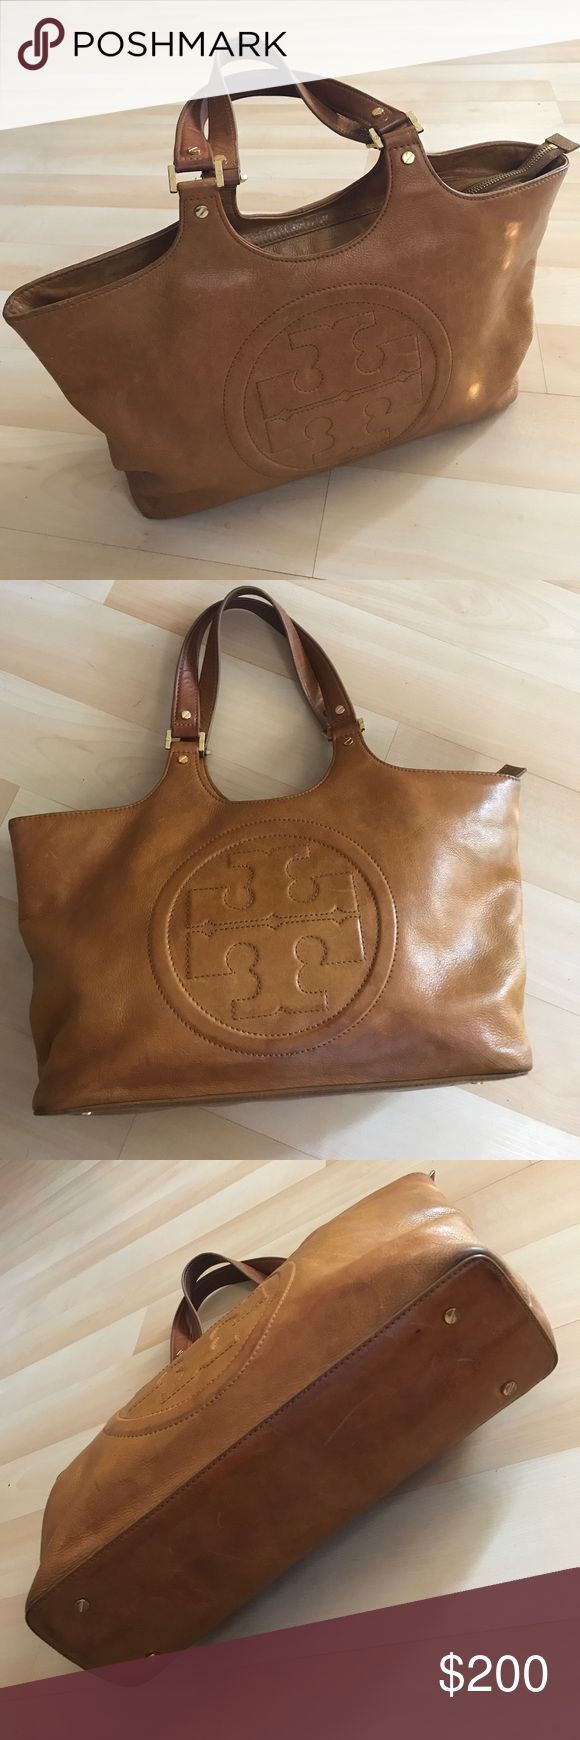 """Vintage caramel Tory Burch pebbled leather bag Vintage caramel Tory Burch pebbled leather bag with zipper at the top. Nice soft leather. Great used condition outside. Needs cleaning inside. Gorgeous bag. Large size 14""""(L), 10""""(H),4""""(D). Shoulder strap length is 16"""". Tory Burch Bags Totes"""